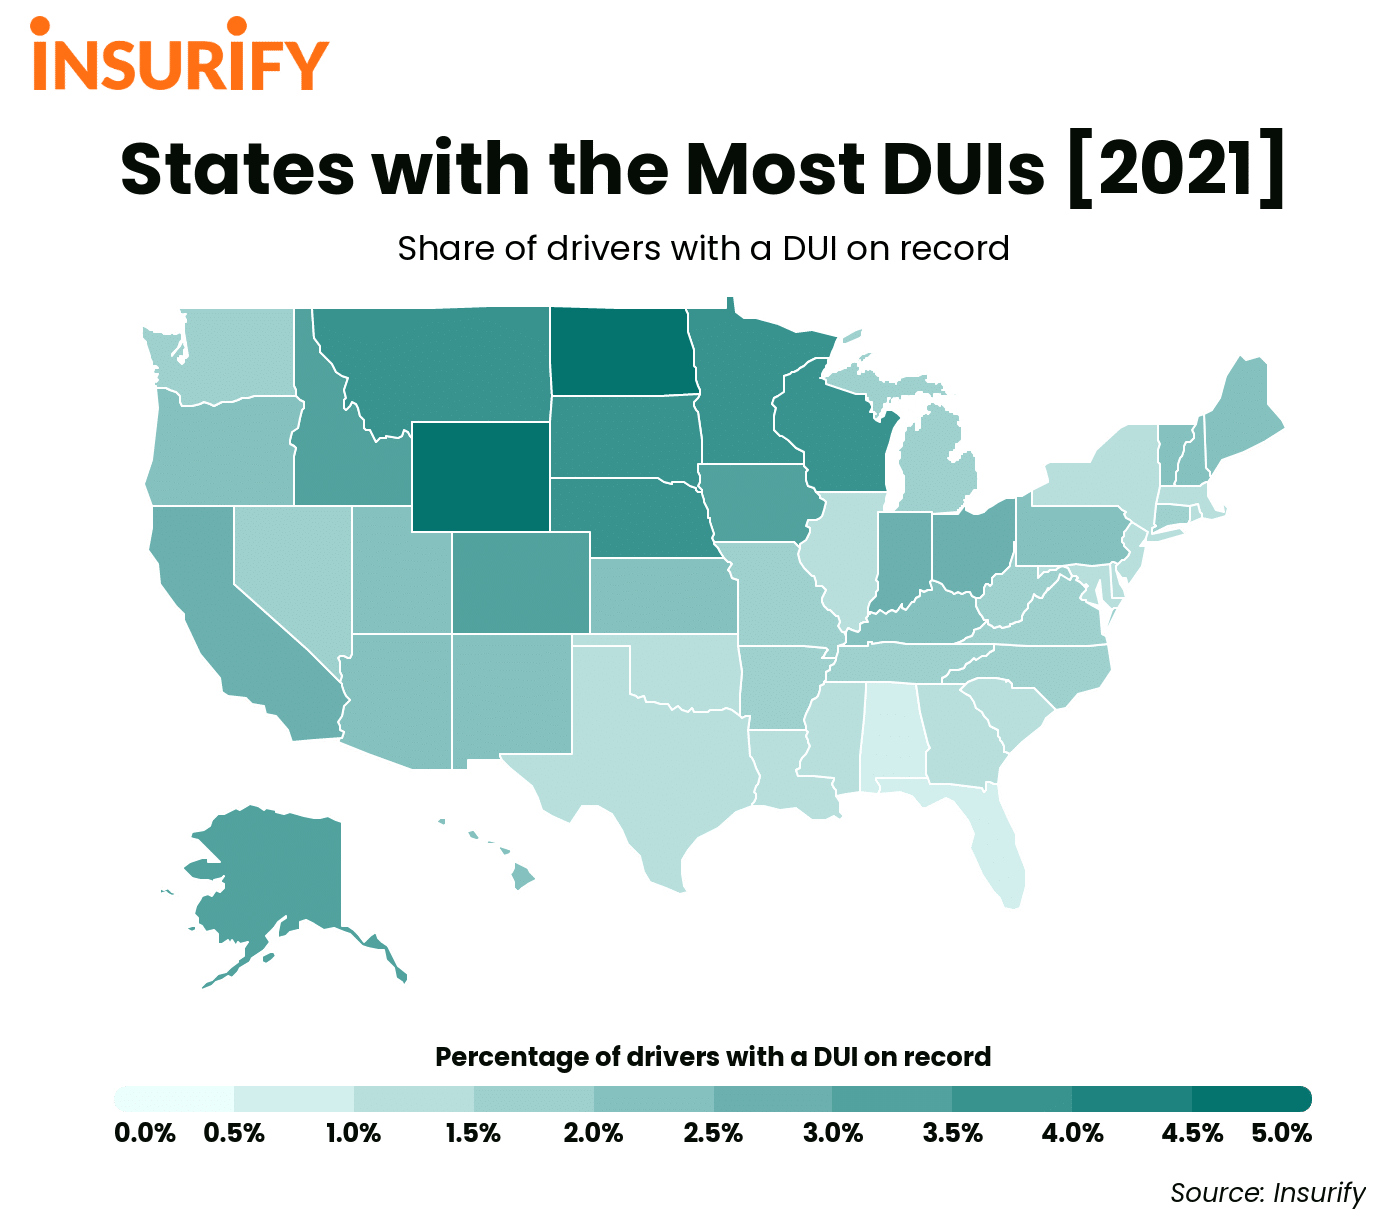 A heat map showing the DUI rate in each state in 2021 across the United States.